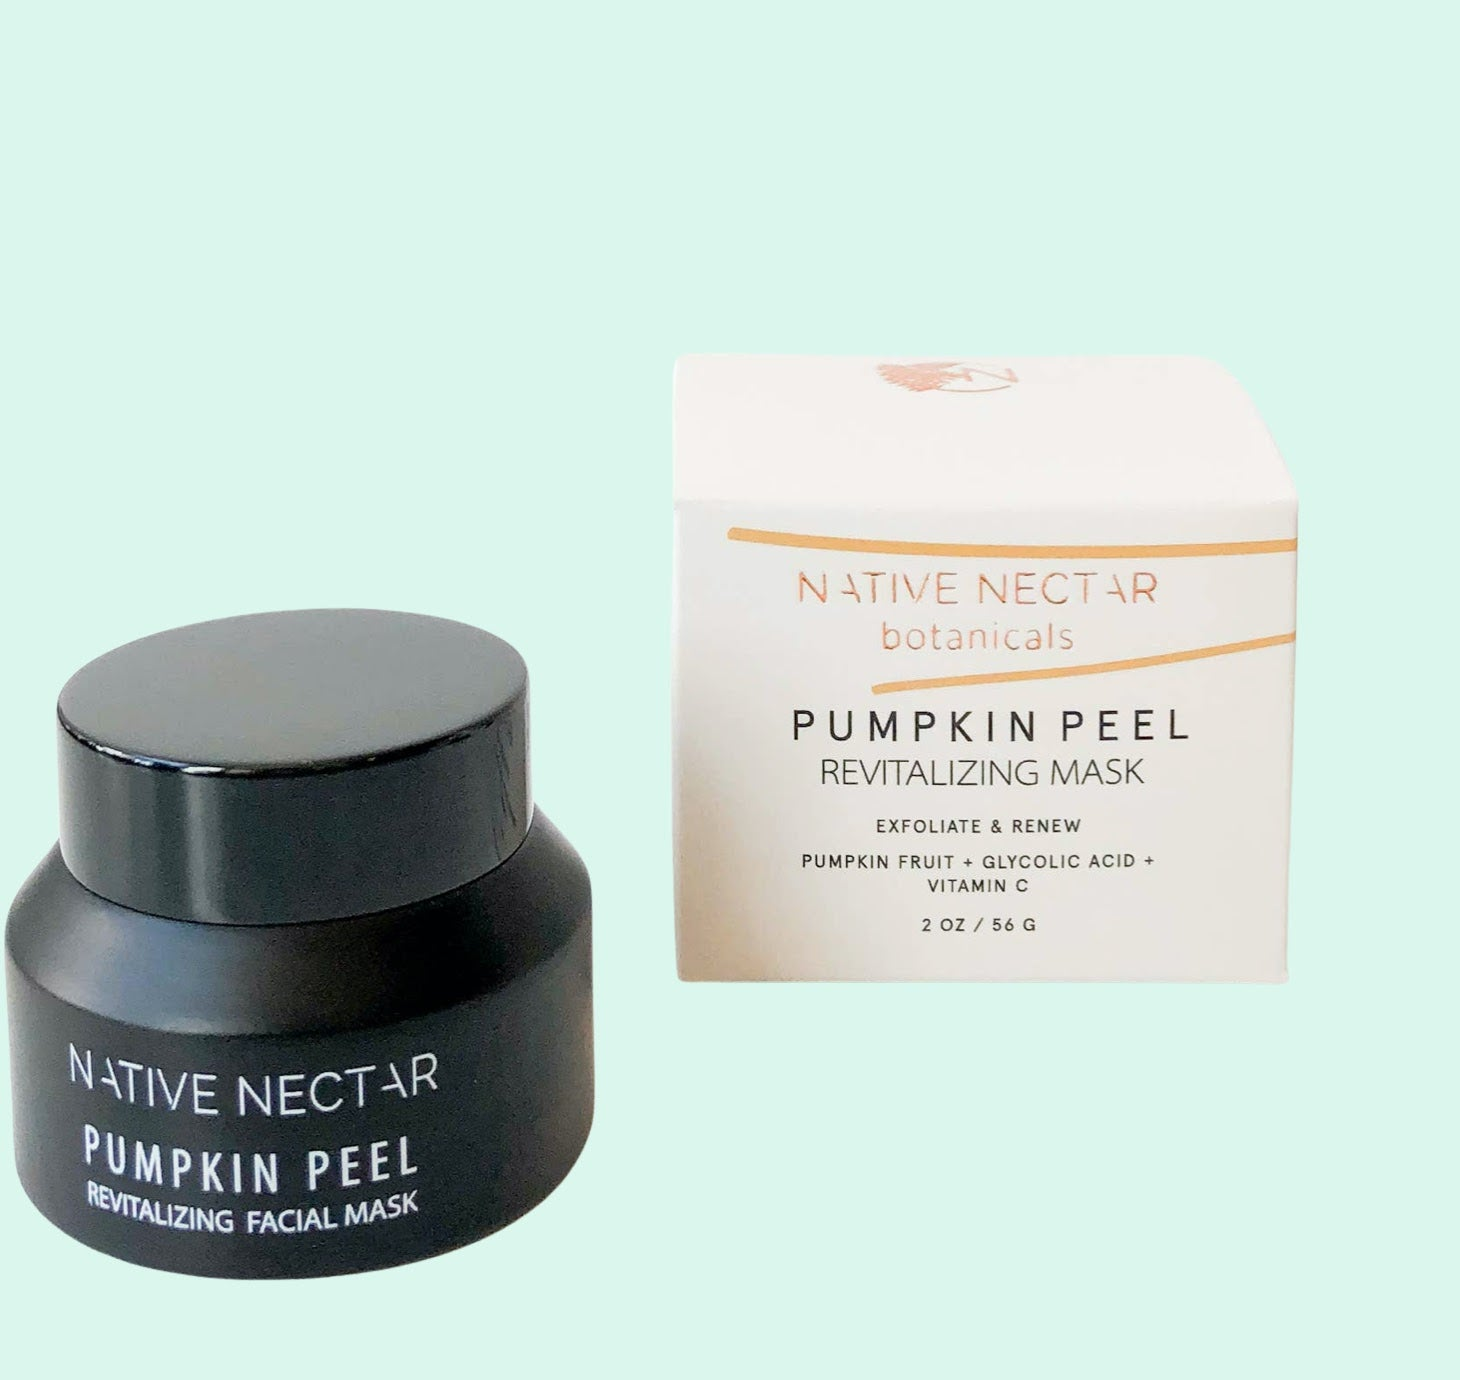 PUMPKIN PEEL FACIAL MASK